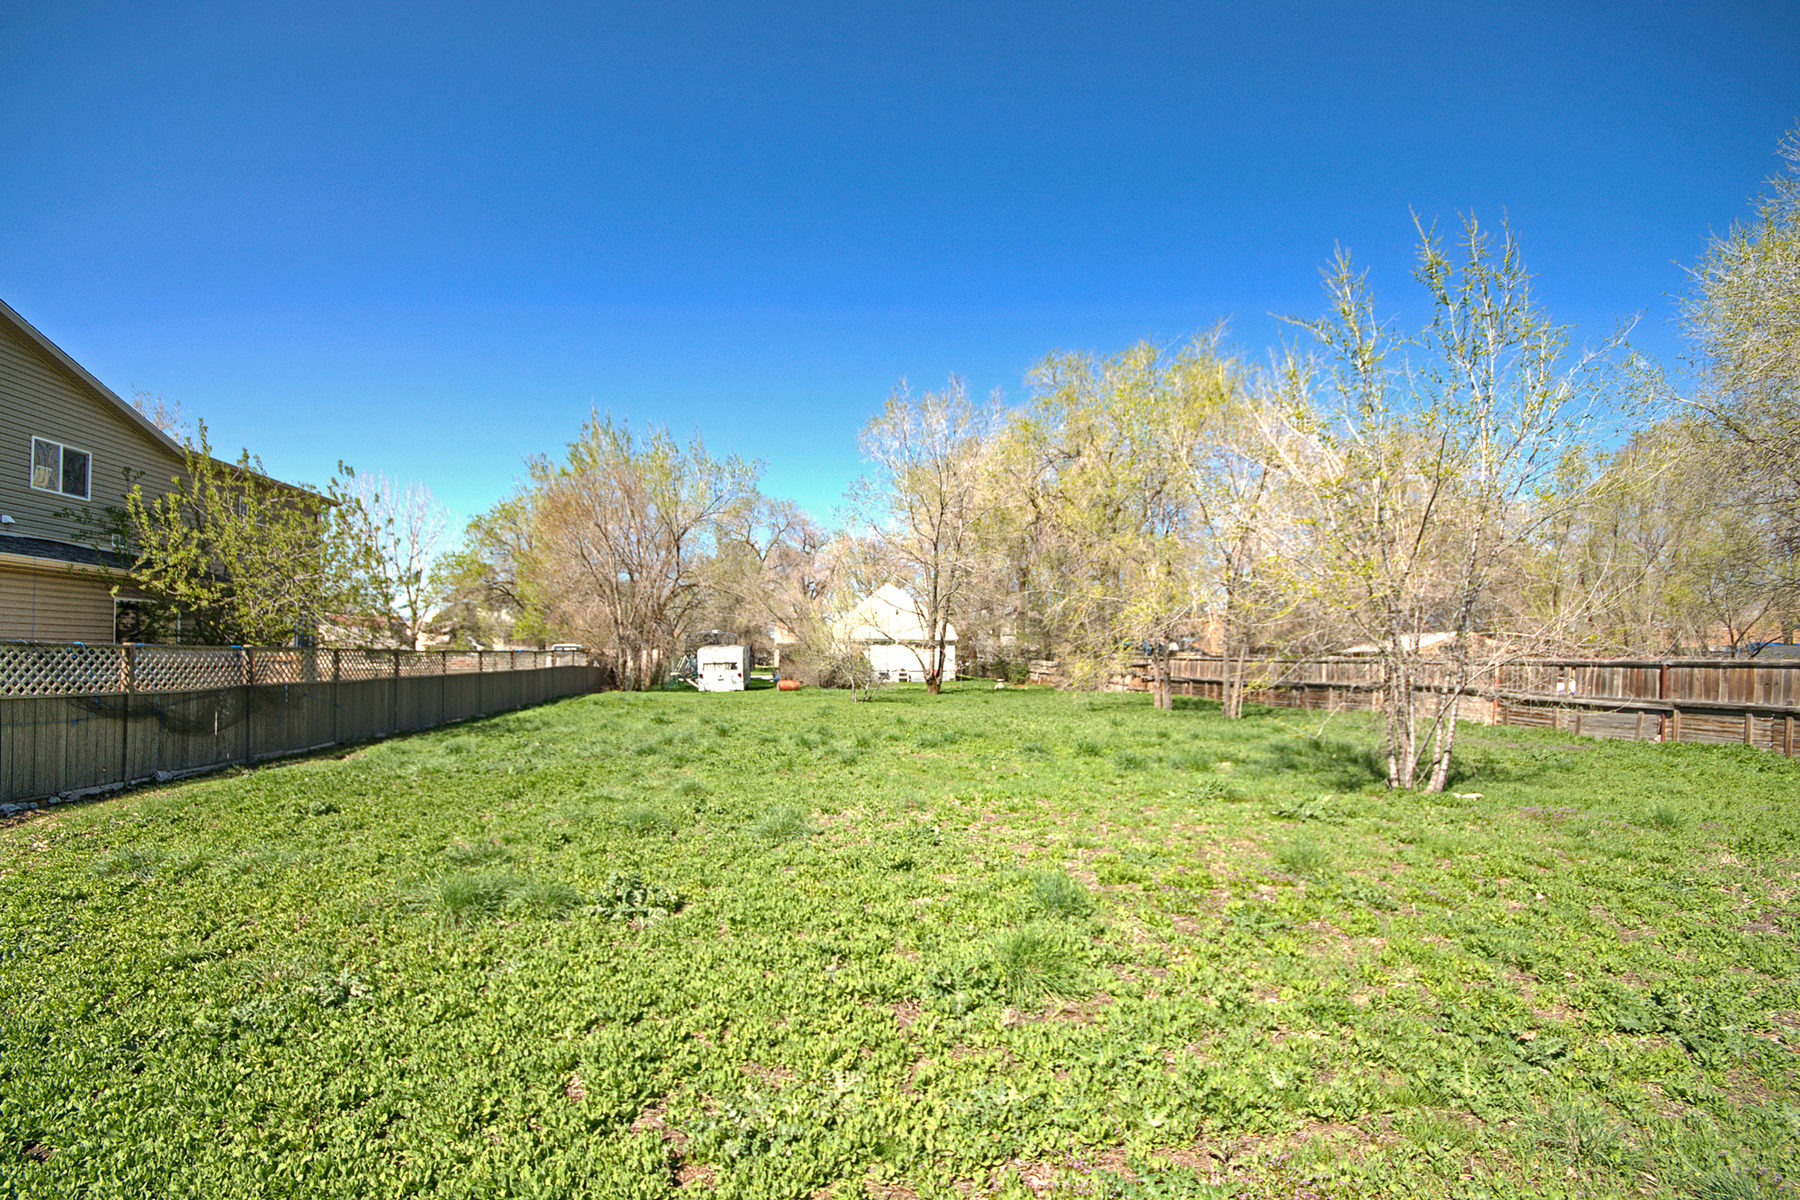 Terrain pour l Vente à Great Opportunity! 1510 South 945 West Salt Lake City, Utah, 84104 États-Unis